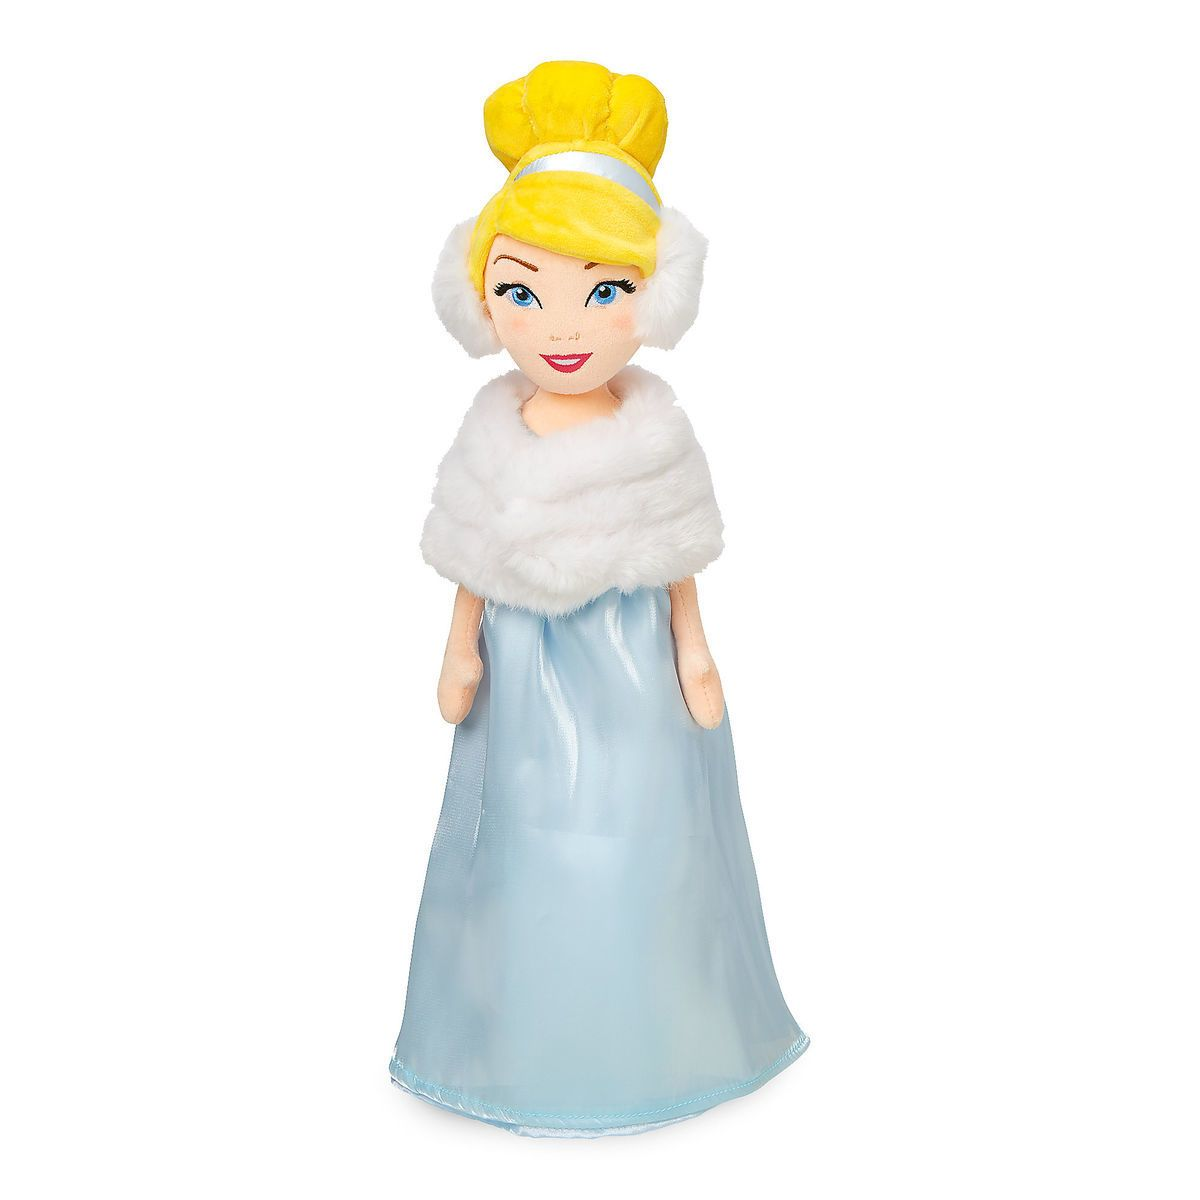 Disney Cinderella Plush Doll in Winter Cape Medium New with Tags